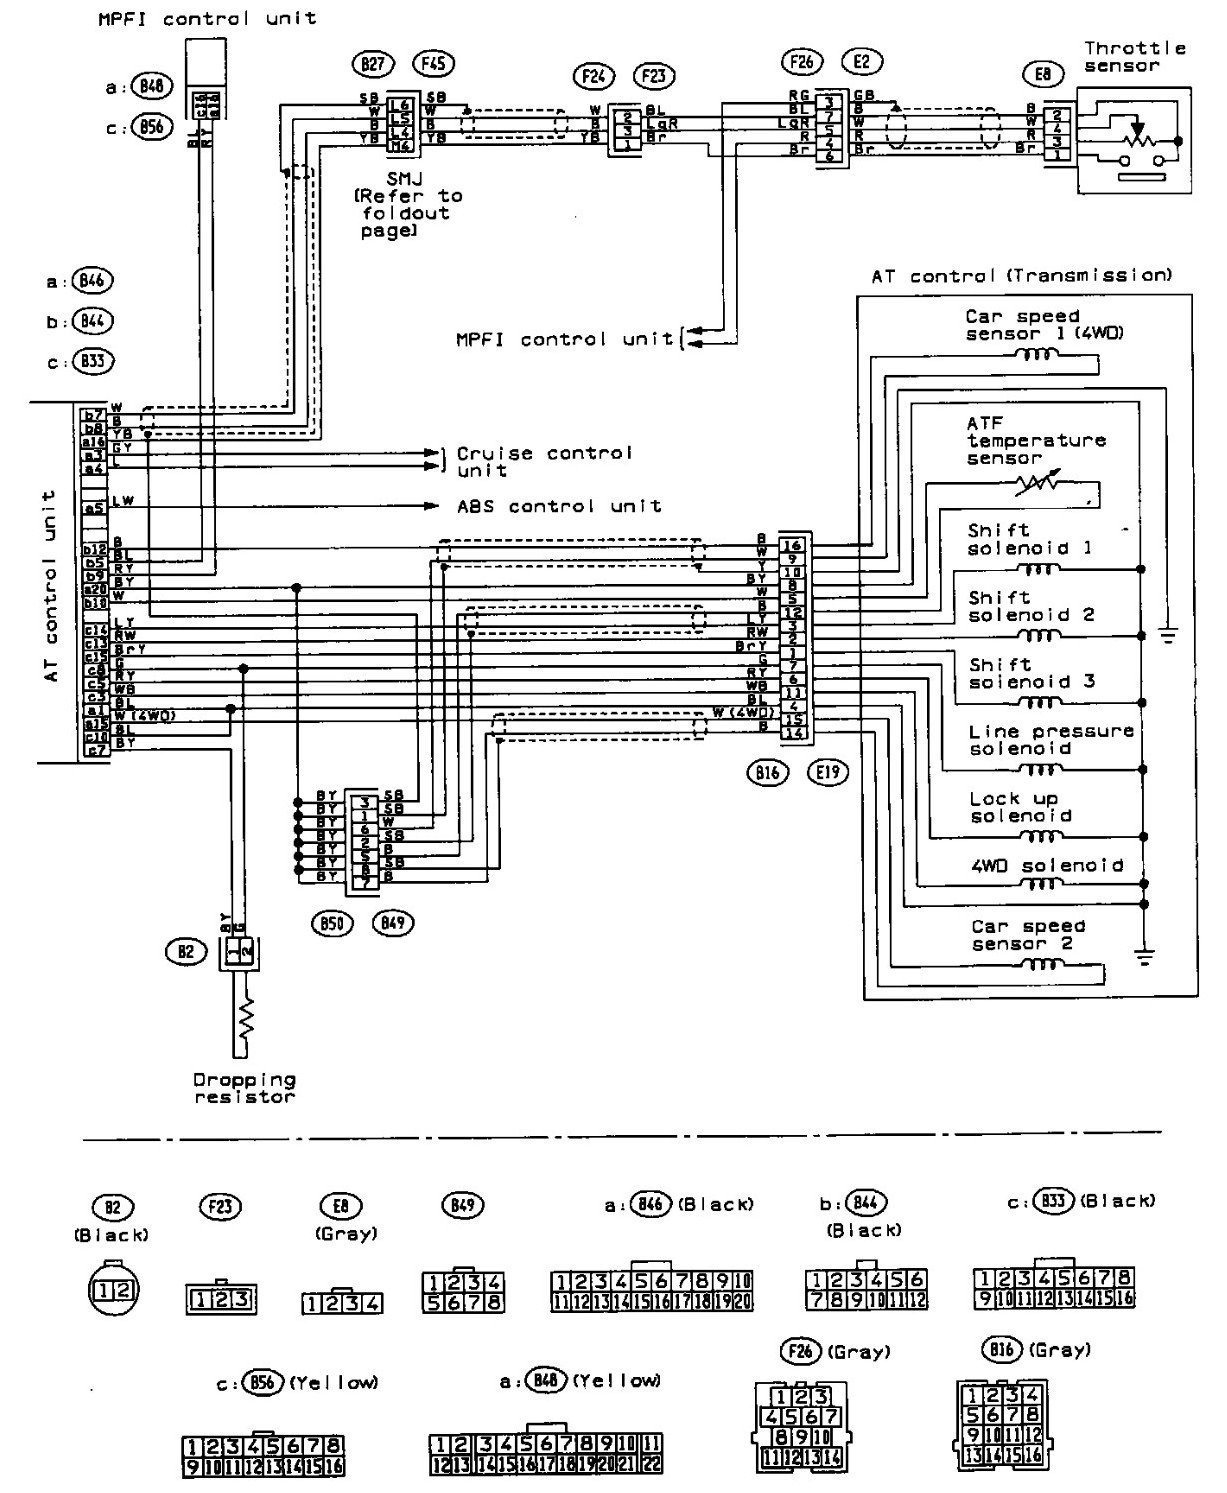 2001 Subaru Outback Radio Wiring Diagram - Wiring Diagram